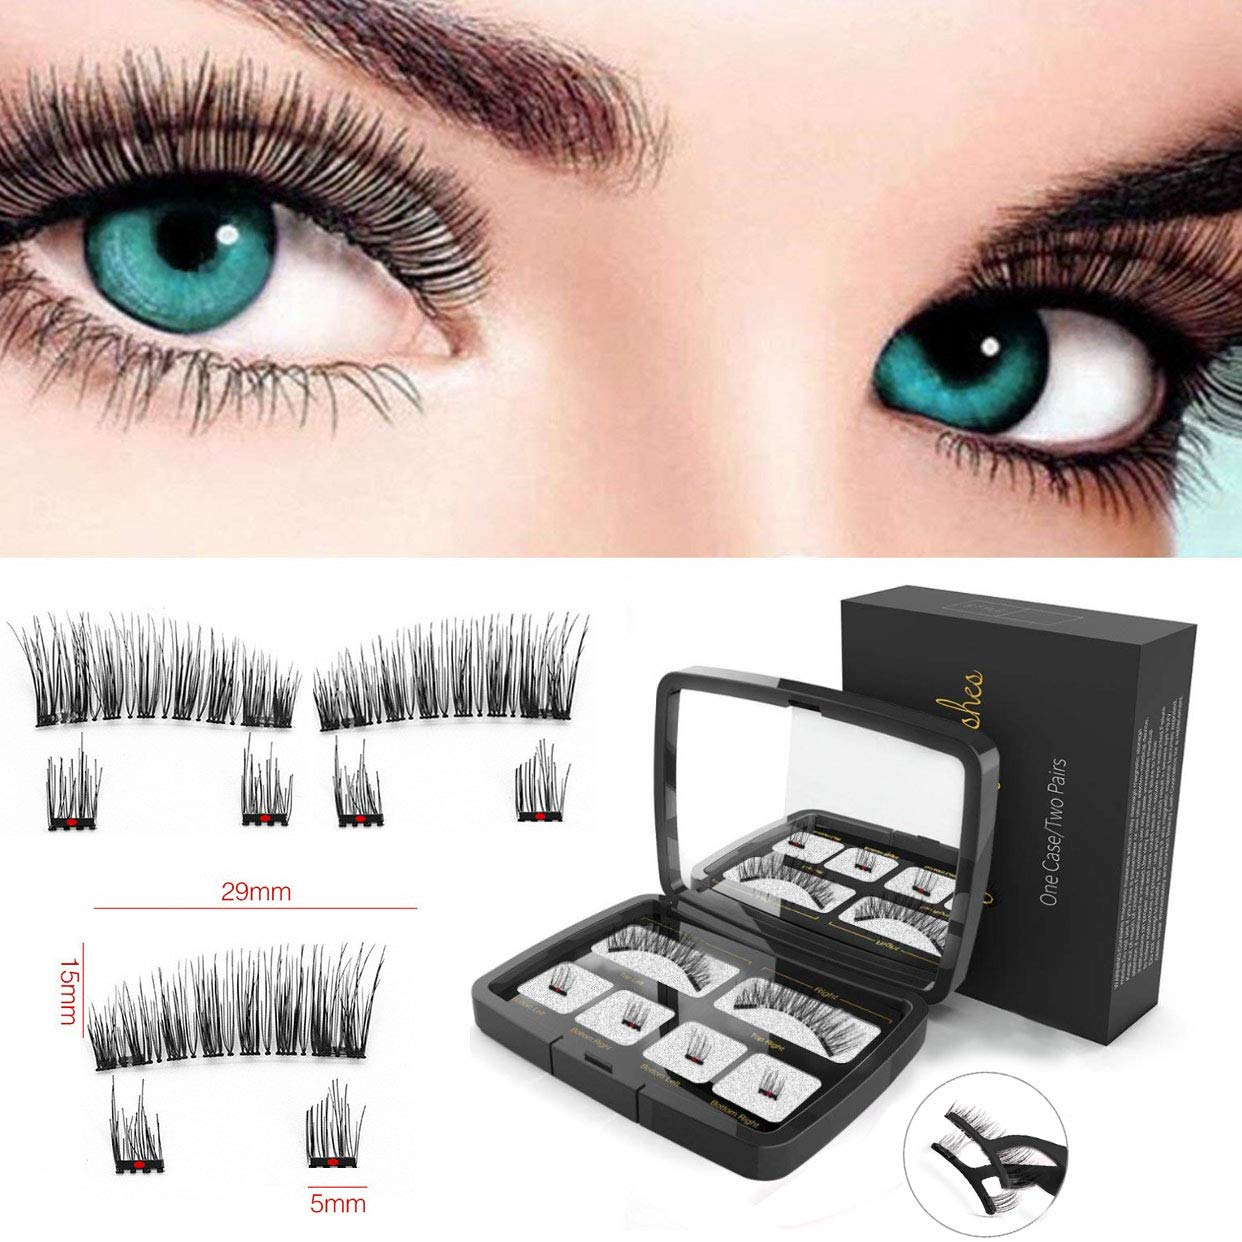 Magnetic Eyelashes, With Tweezer & Mirror, No Glue, Soft, Long & Thick, Natural Look, 3D Fiber Reusable Eyelashes, Ultra-thin Dual Magnetic Eyelashes for Full Eye Aikating 20180519-1